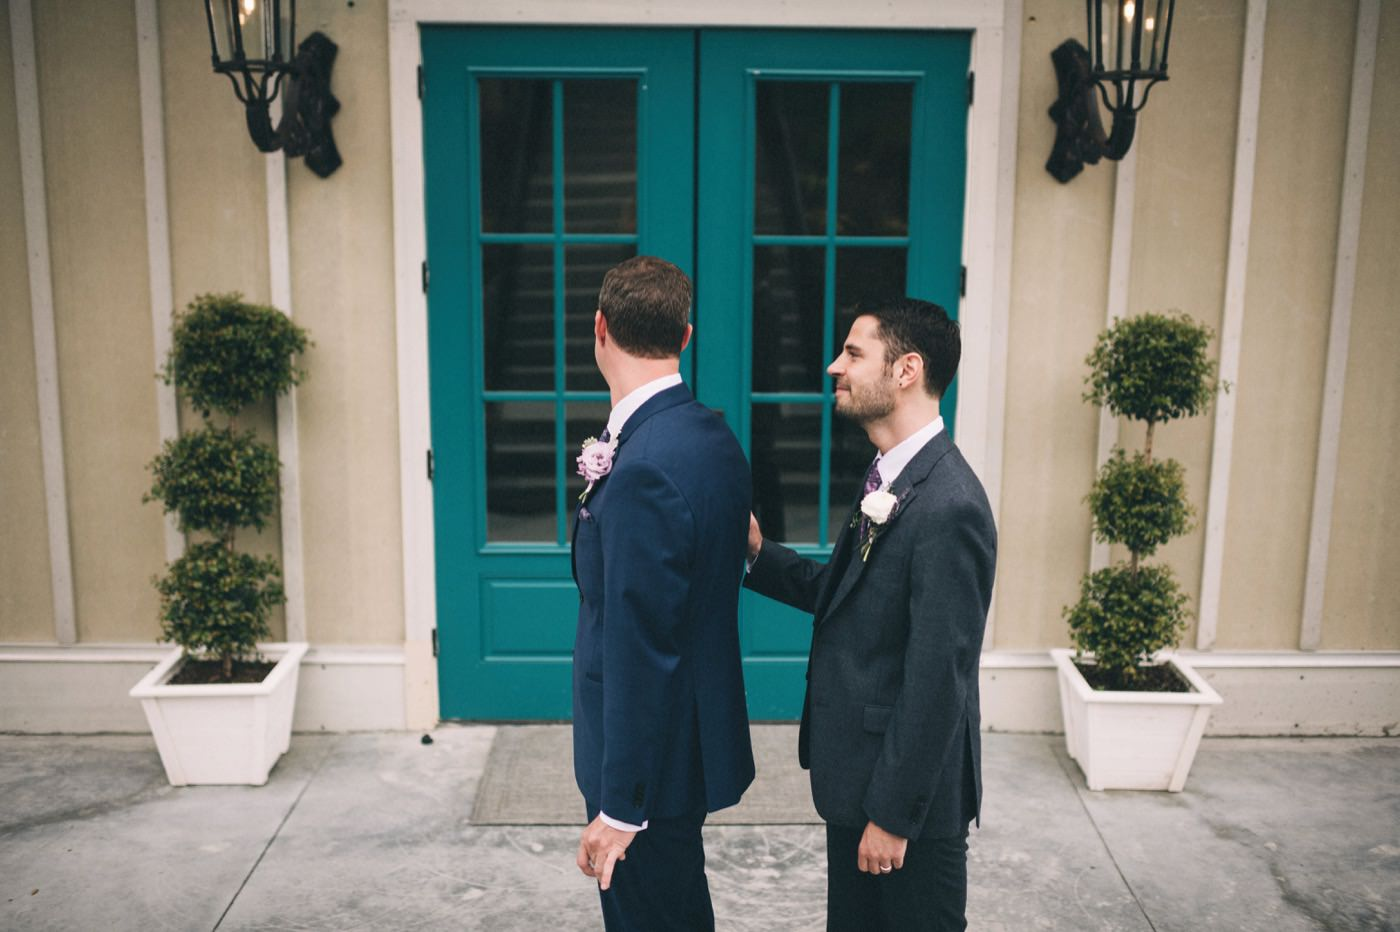 Will-Nate-Louisville-LGBTQ-Pride-Month-Kentucky-Wedding-By-Sarah-Katherine-Davis-Photograpy0008.JPG